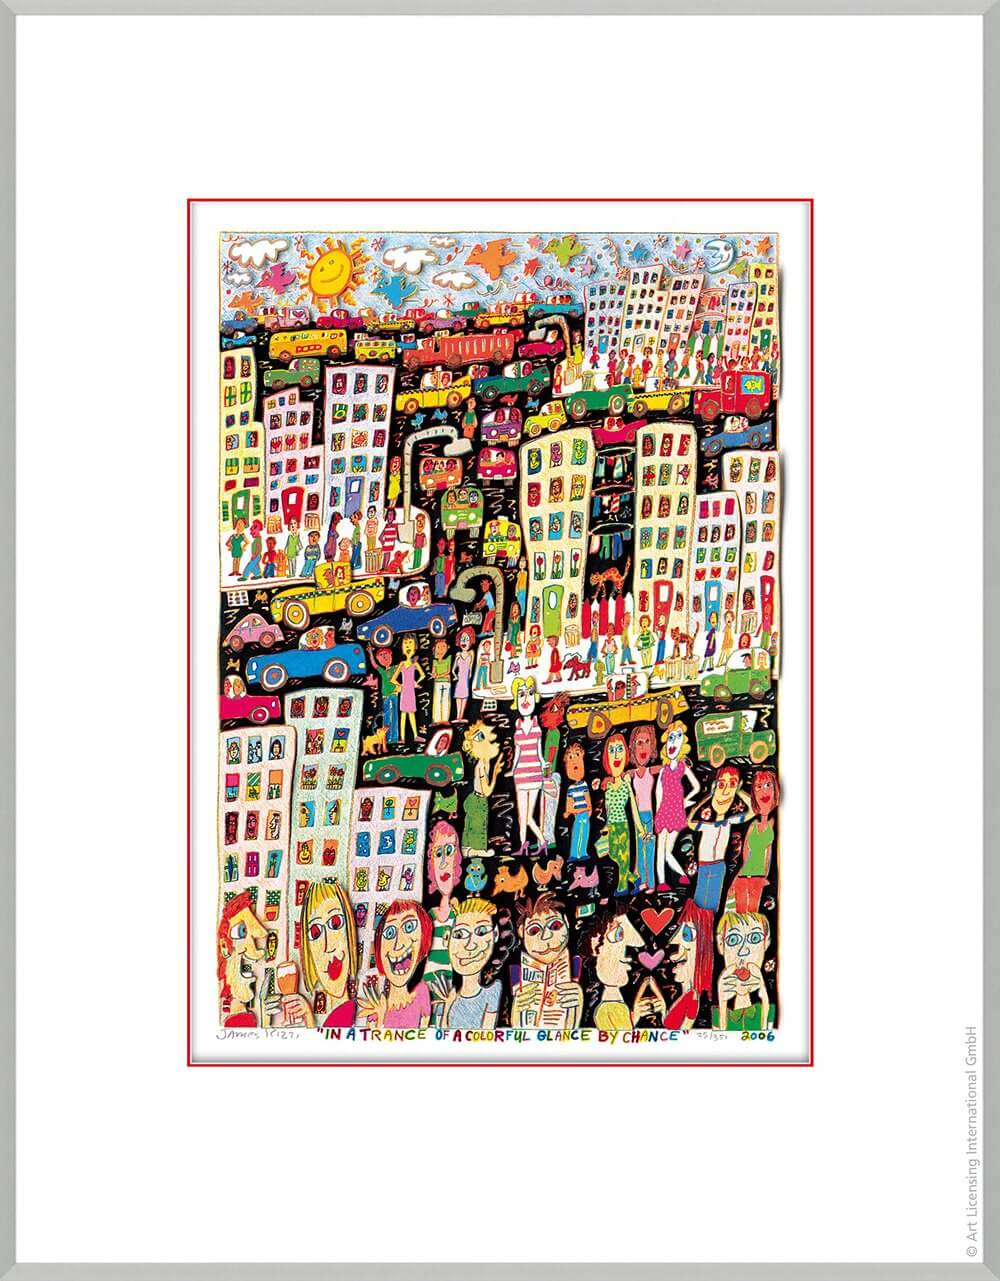 James Rizzi: In A Trance Of A Colorful Glance By Chance